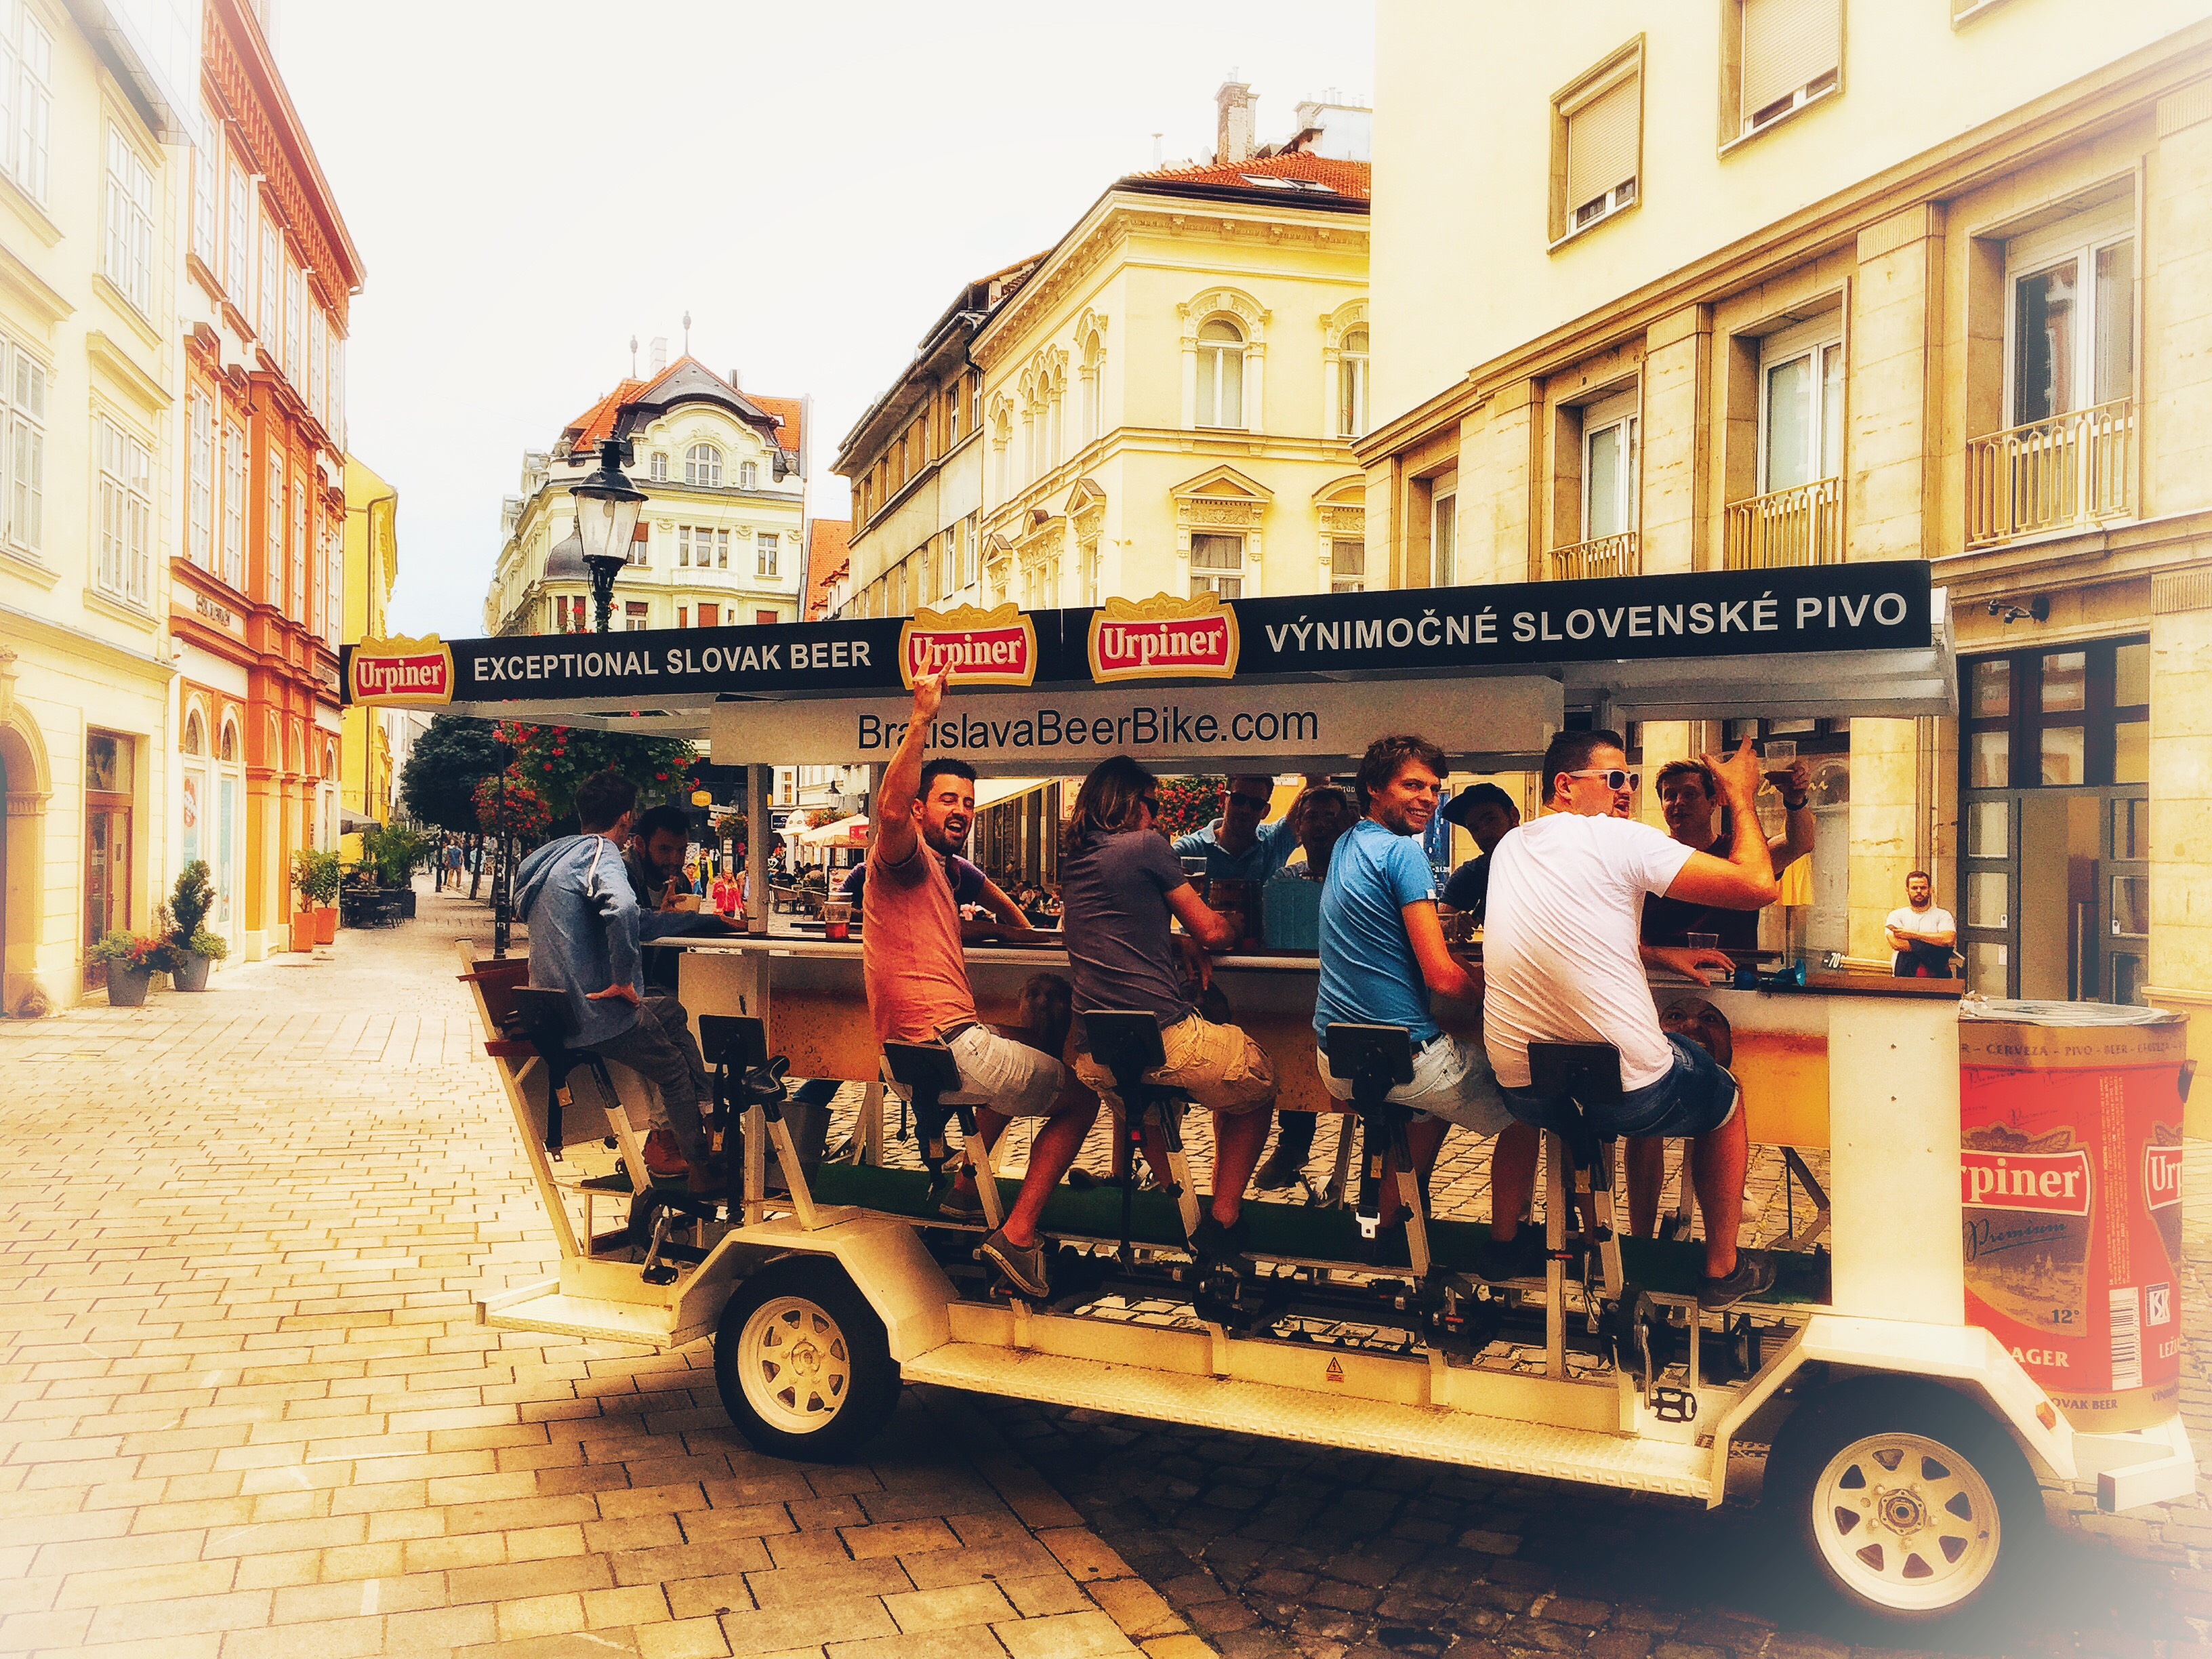 Fun with the Prague beer bike